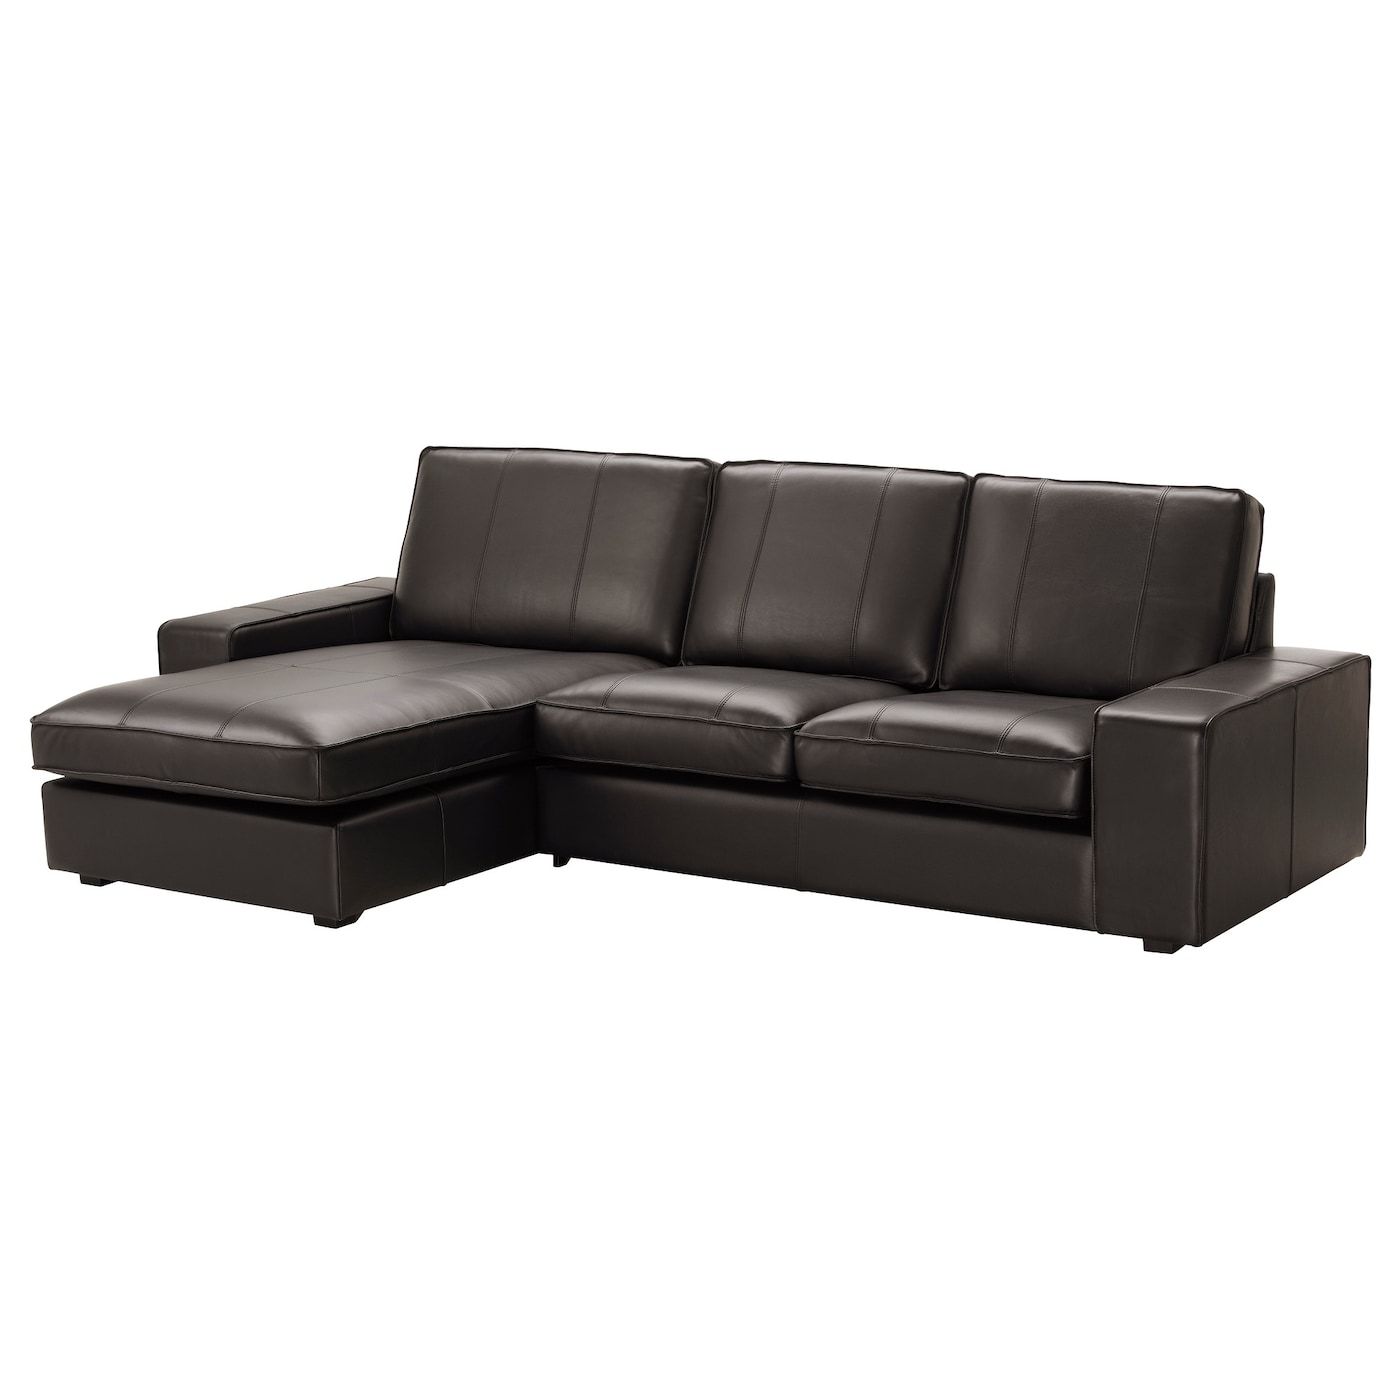 Leather coated fabric sofas ikea for Ikea sofas en cuir